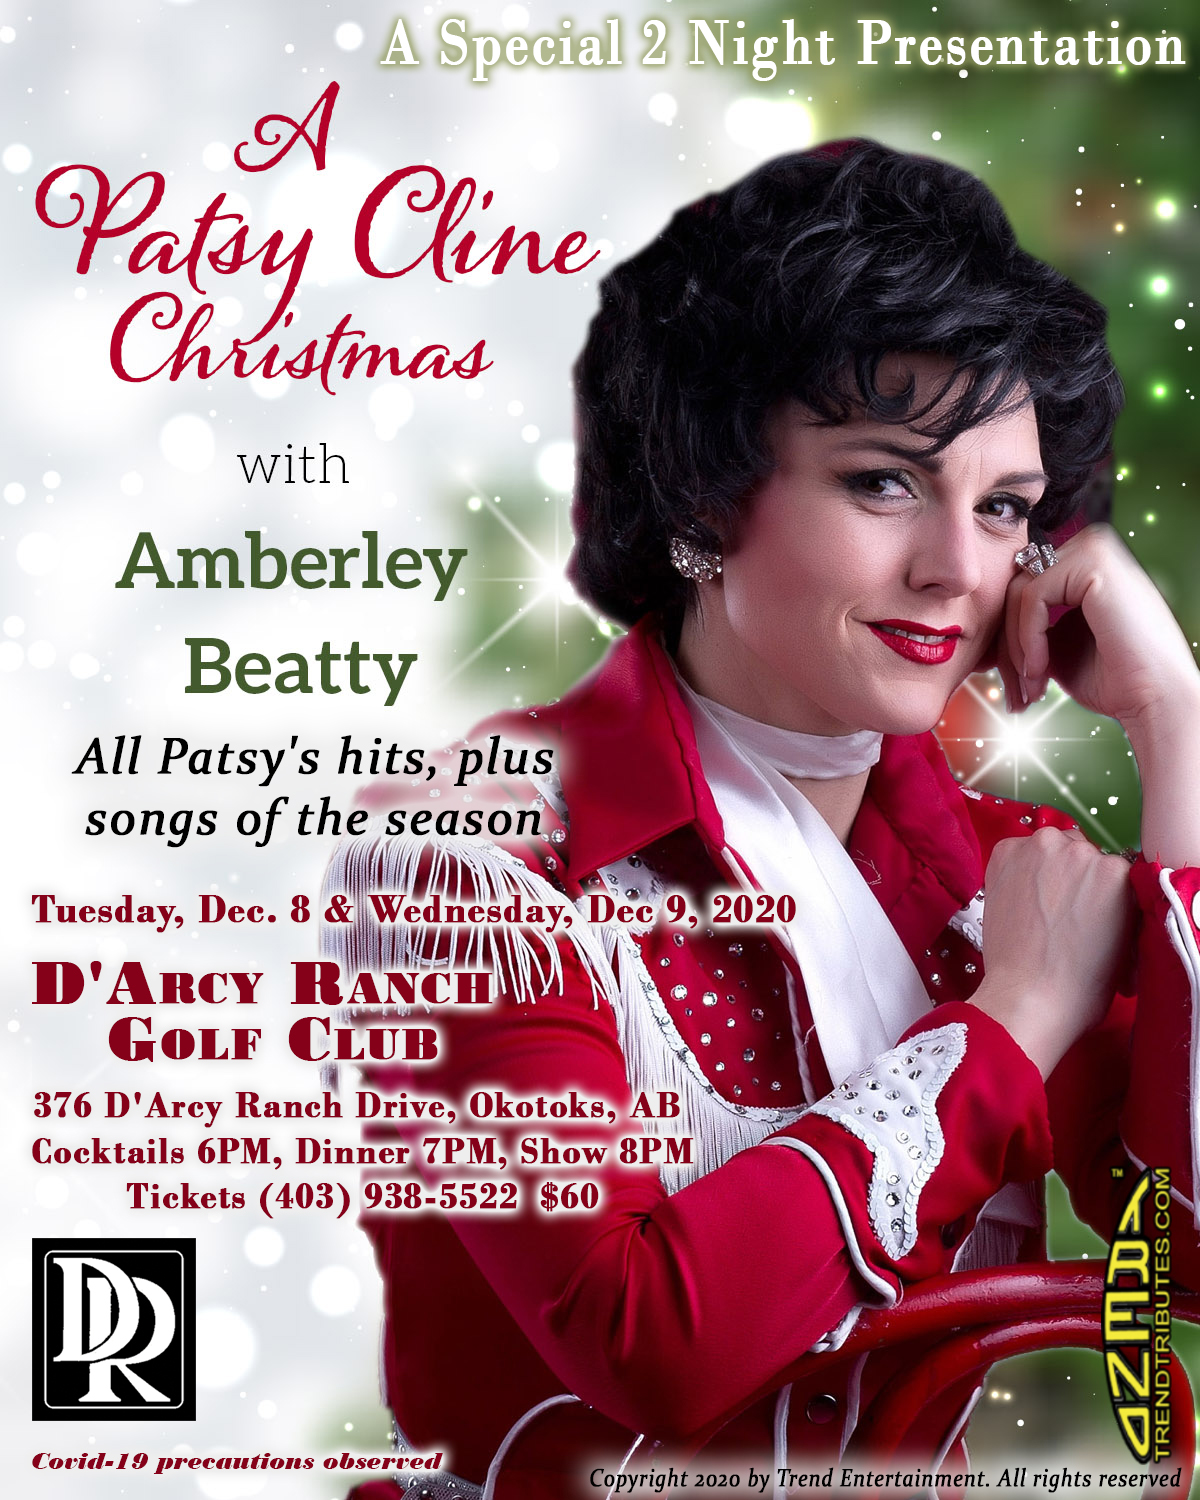 PATSY CLINE CHRISTMAS D'ARCY RANCH POSTER, 8.5 X 11